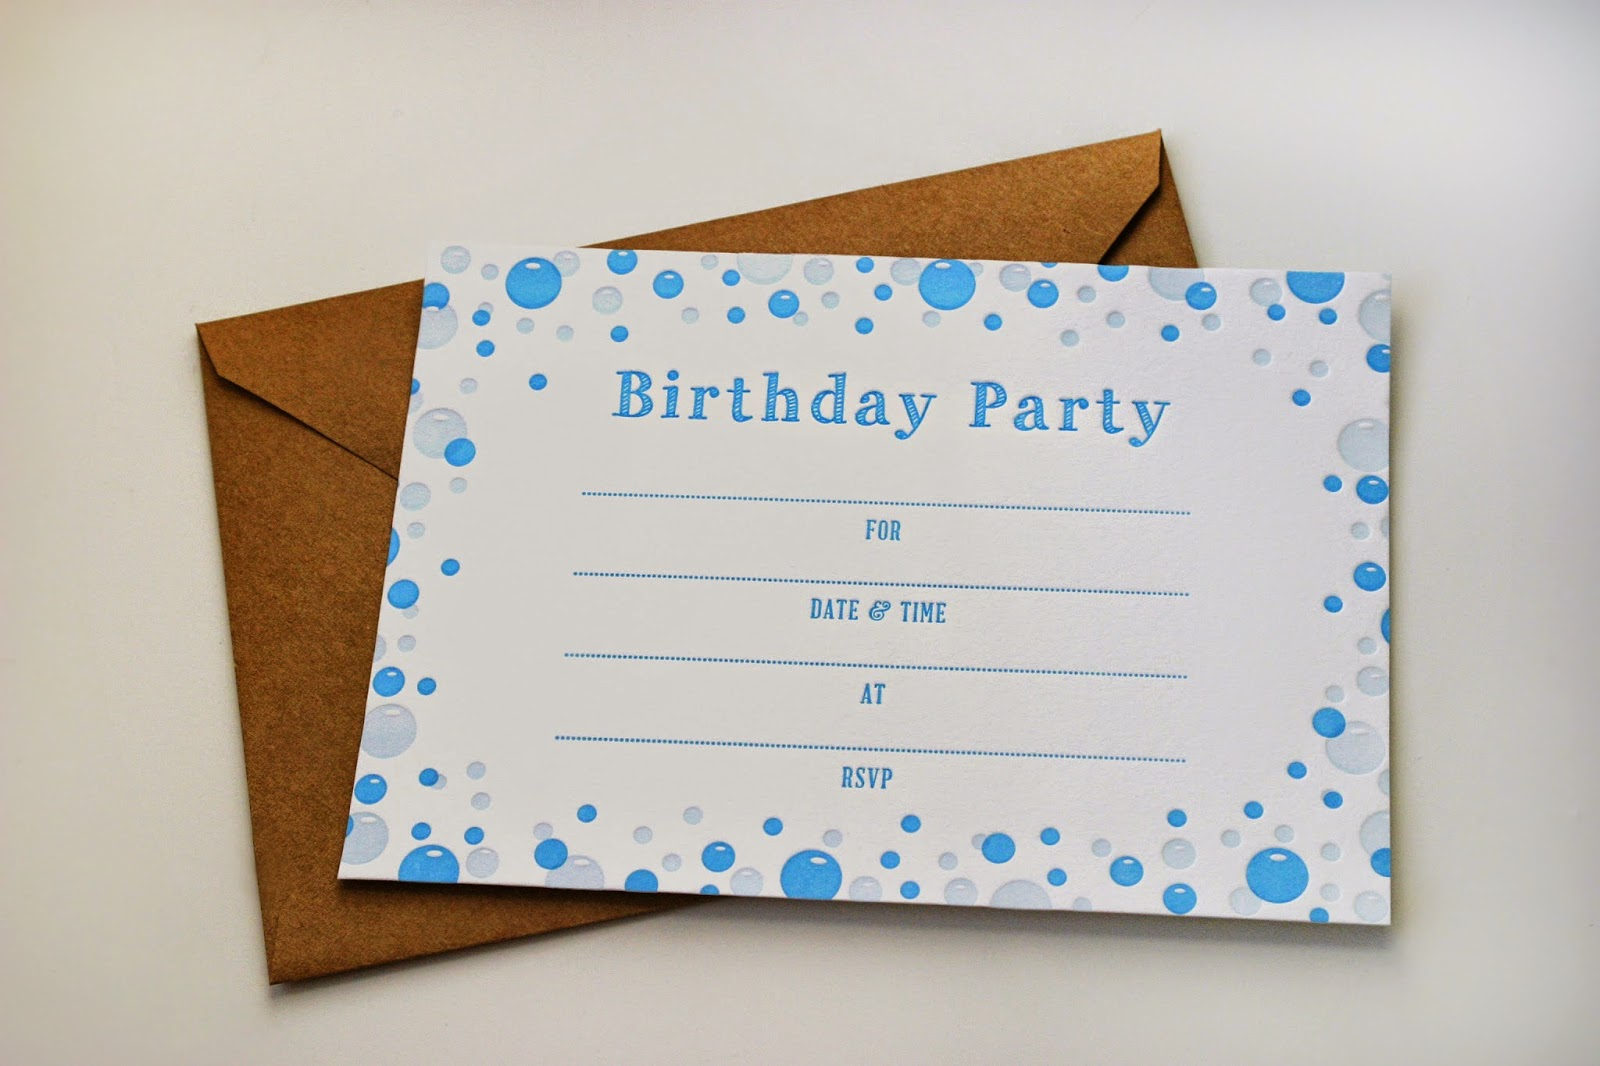 Bubble Party Fill-in Letterpress Invitations by Sweetly Said Press